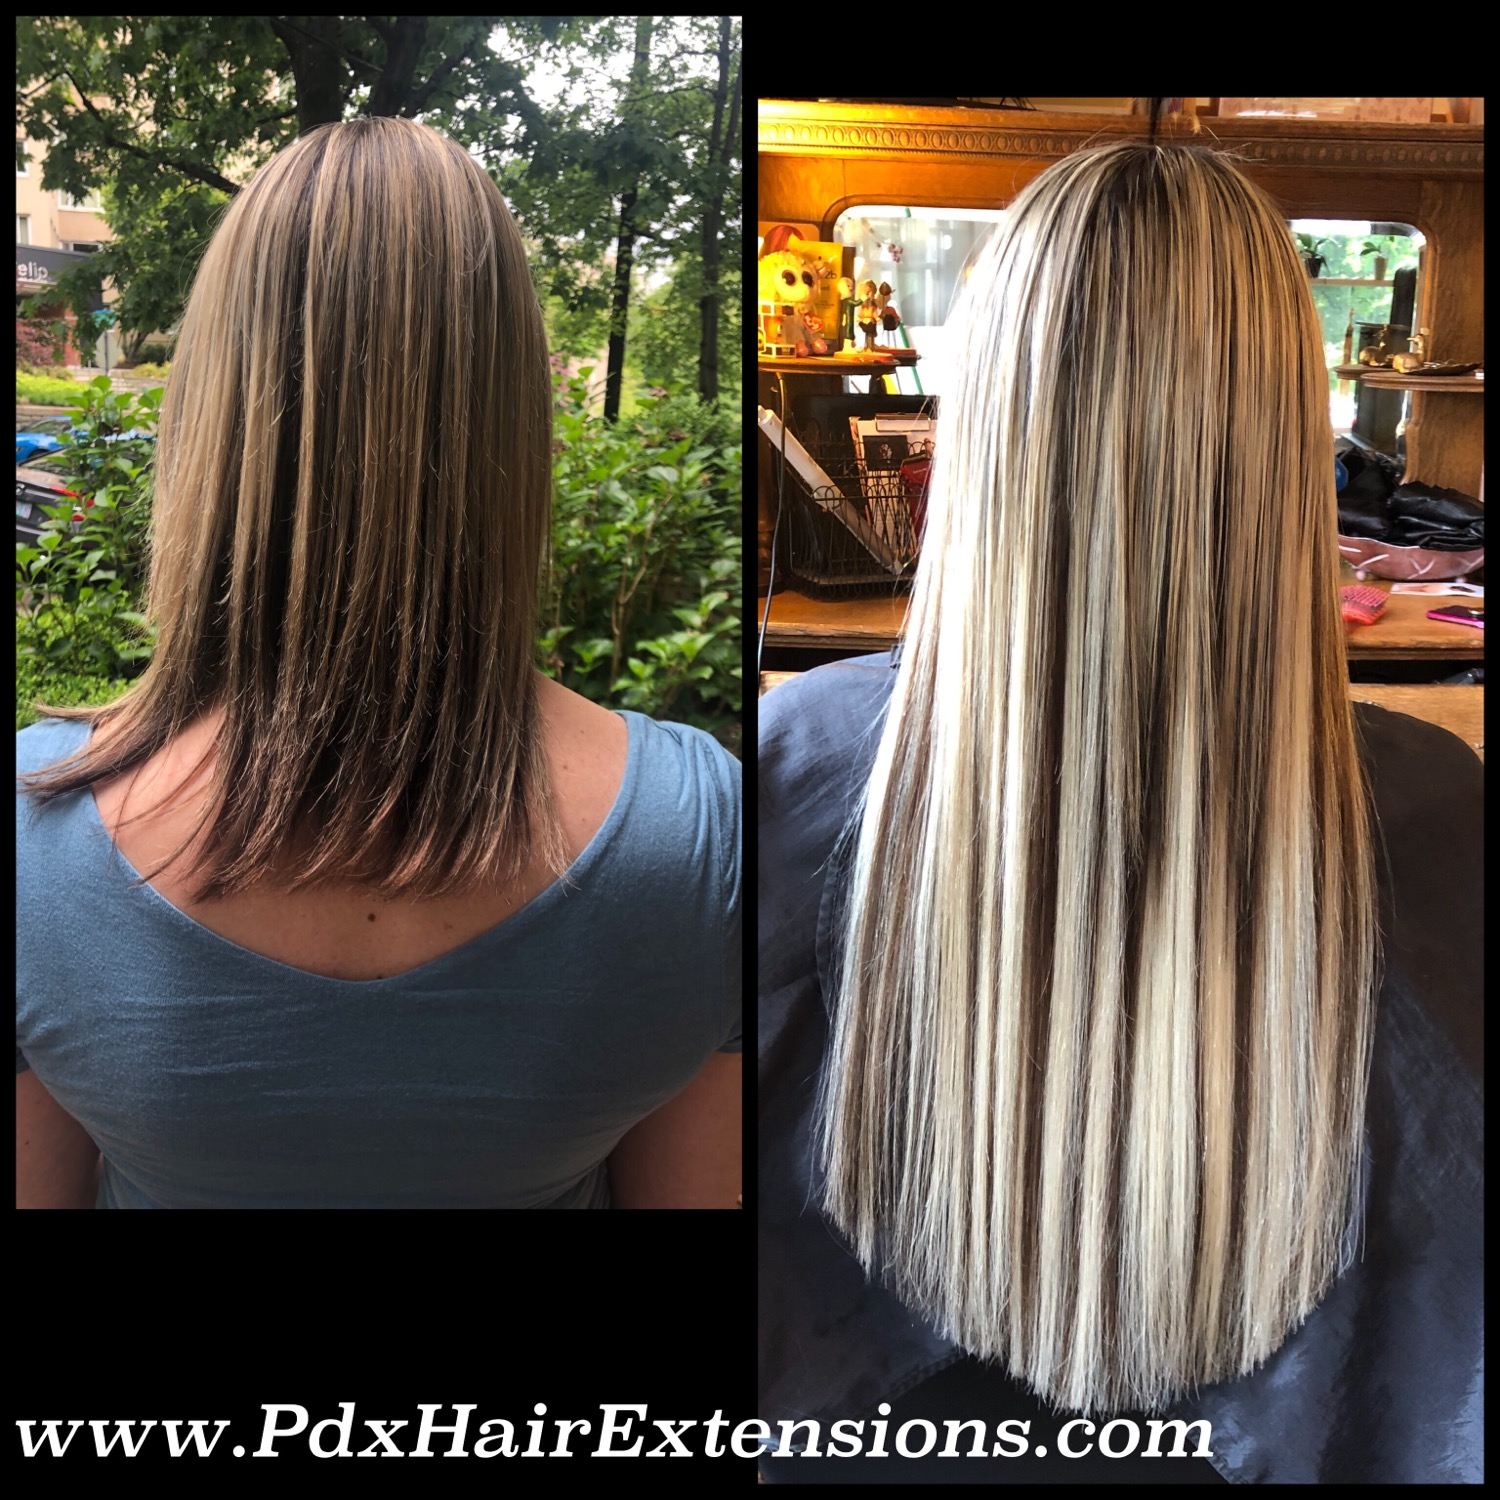 Before & After: Highlight Extensions